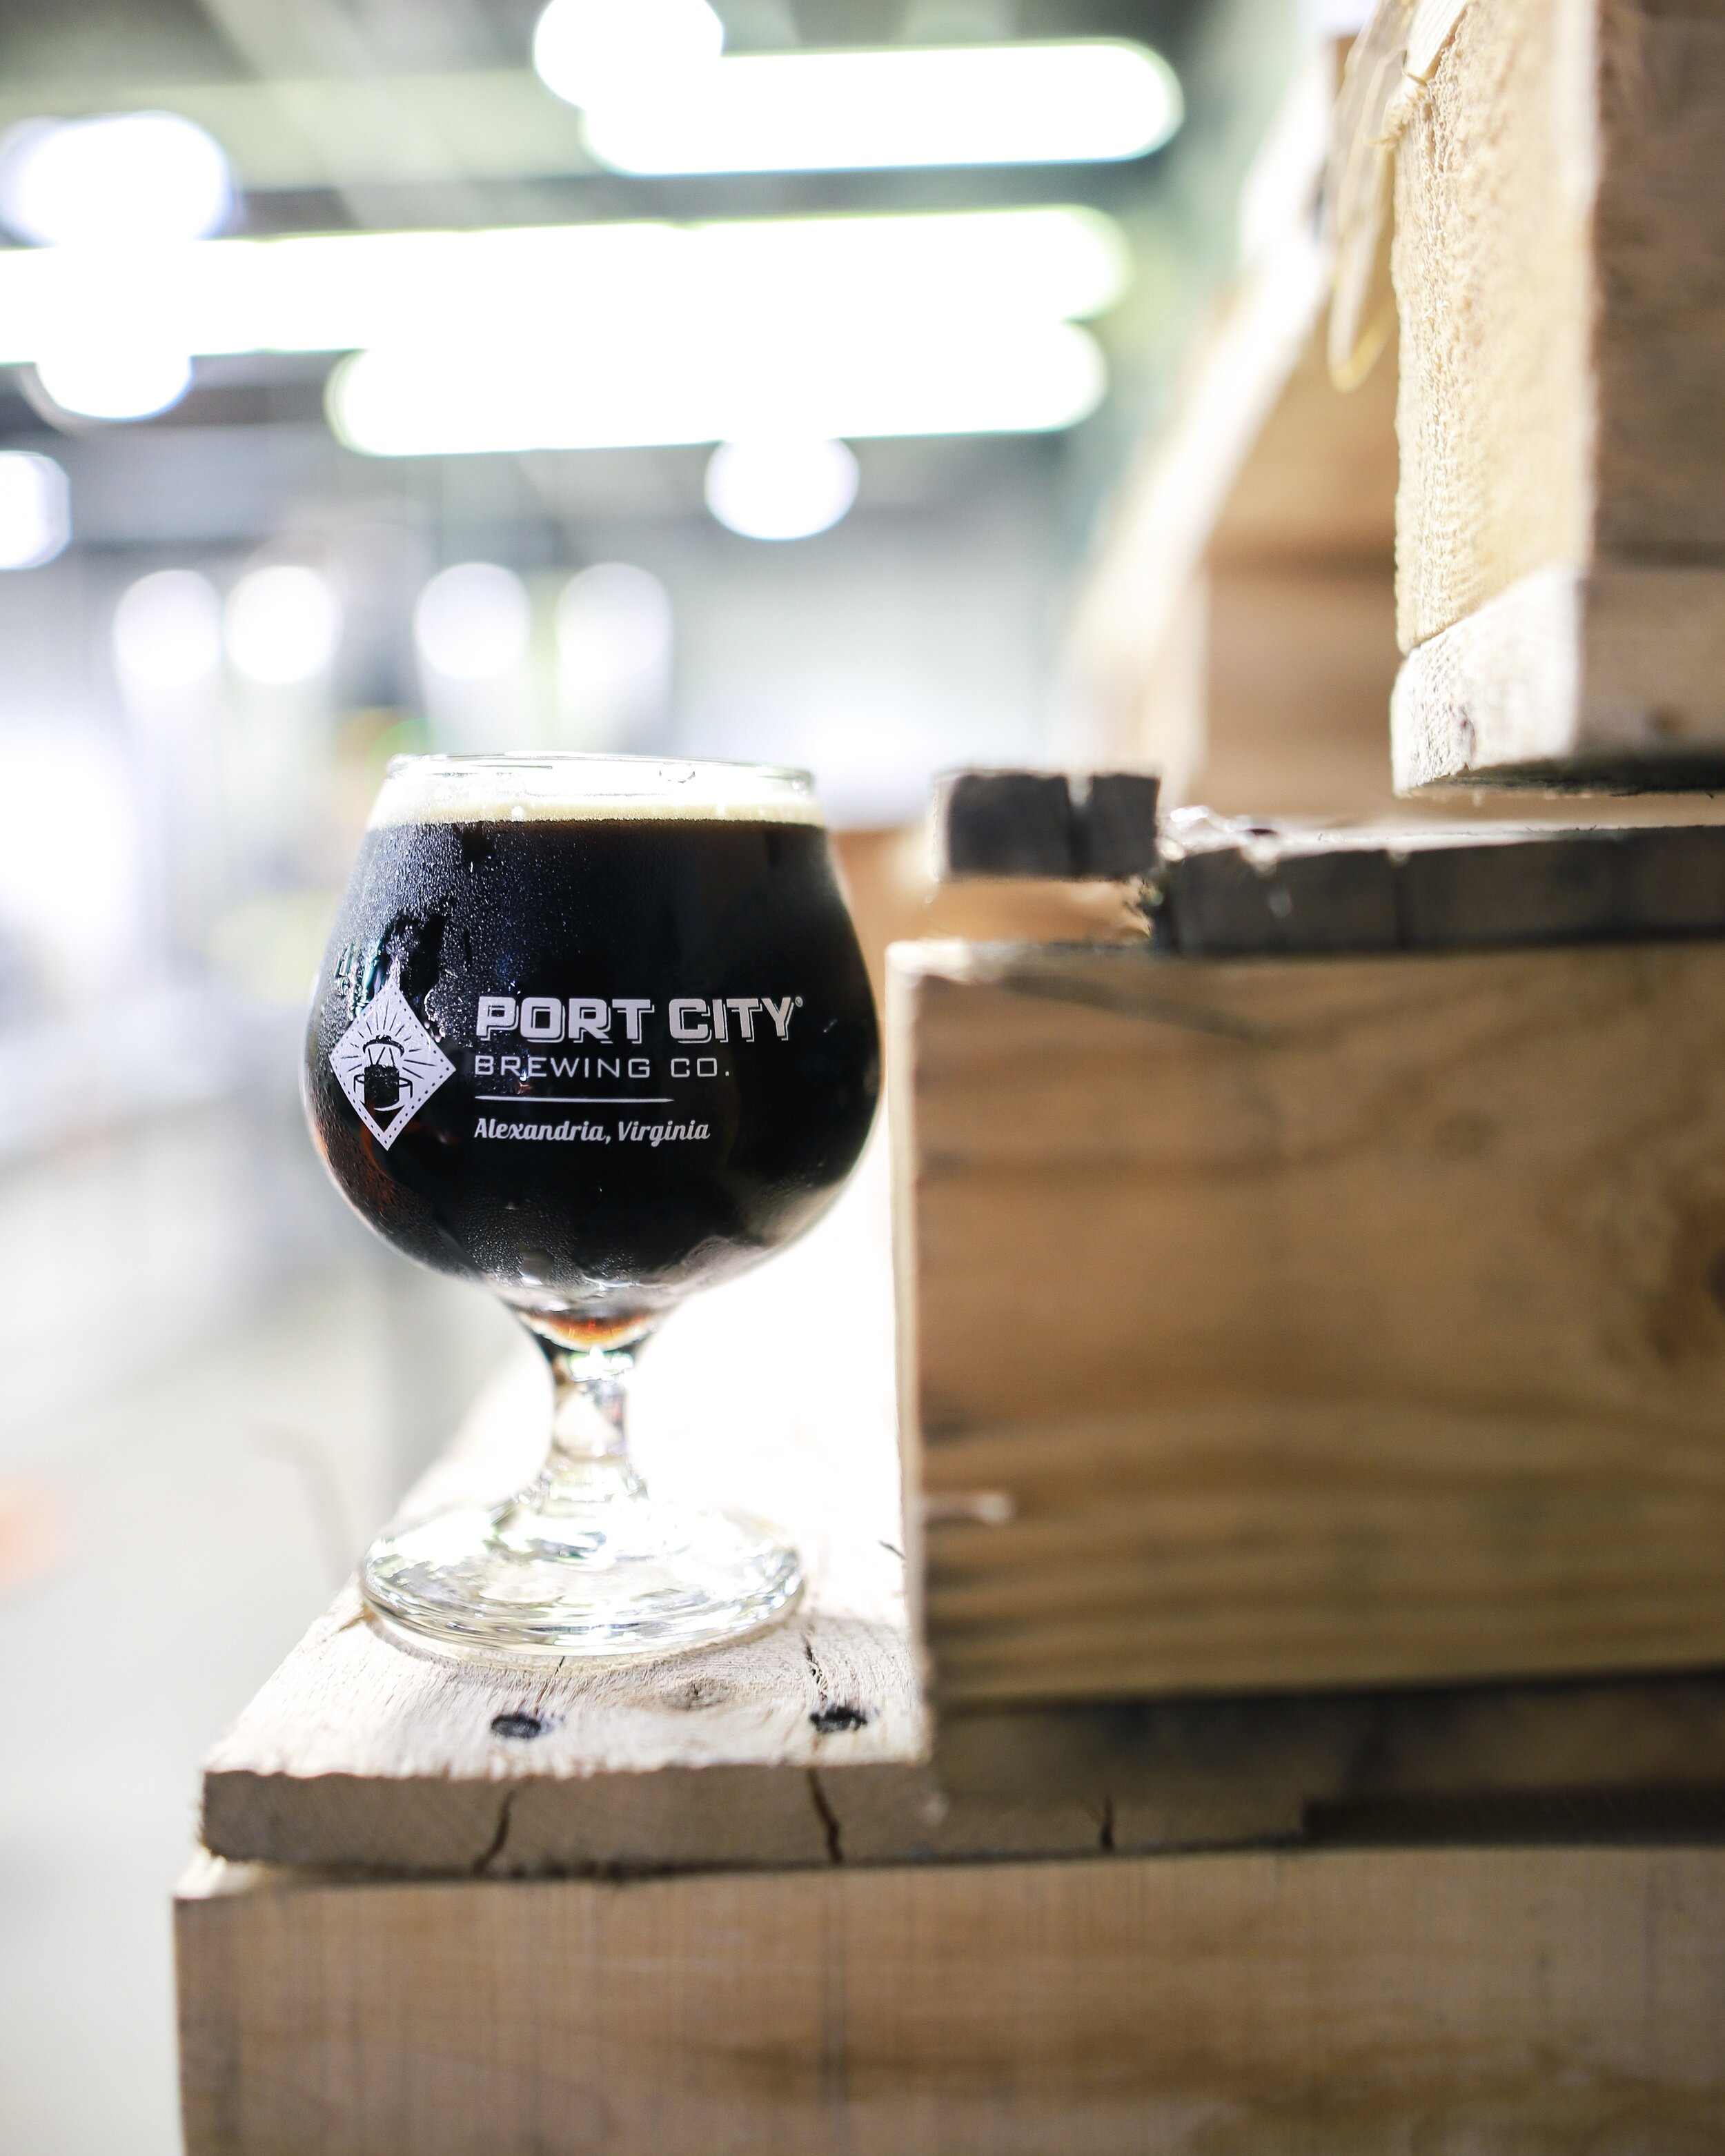 Craft_Beer_Alexandria_Virginia_Port_City-4.JPG